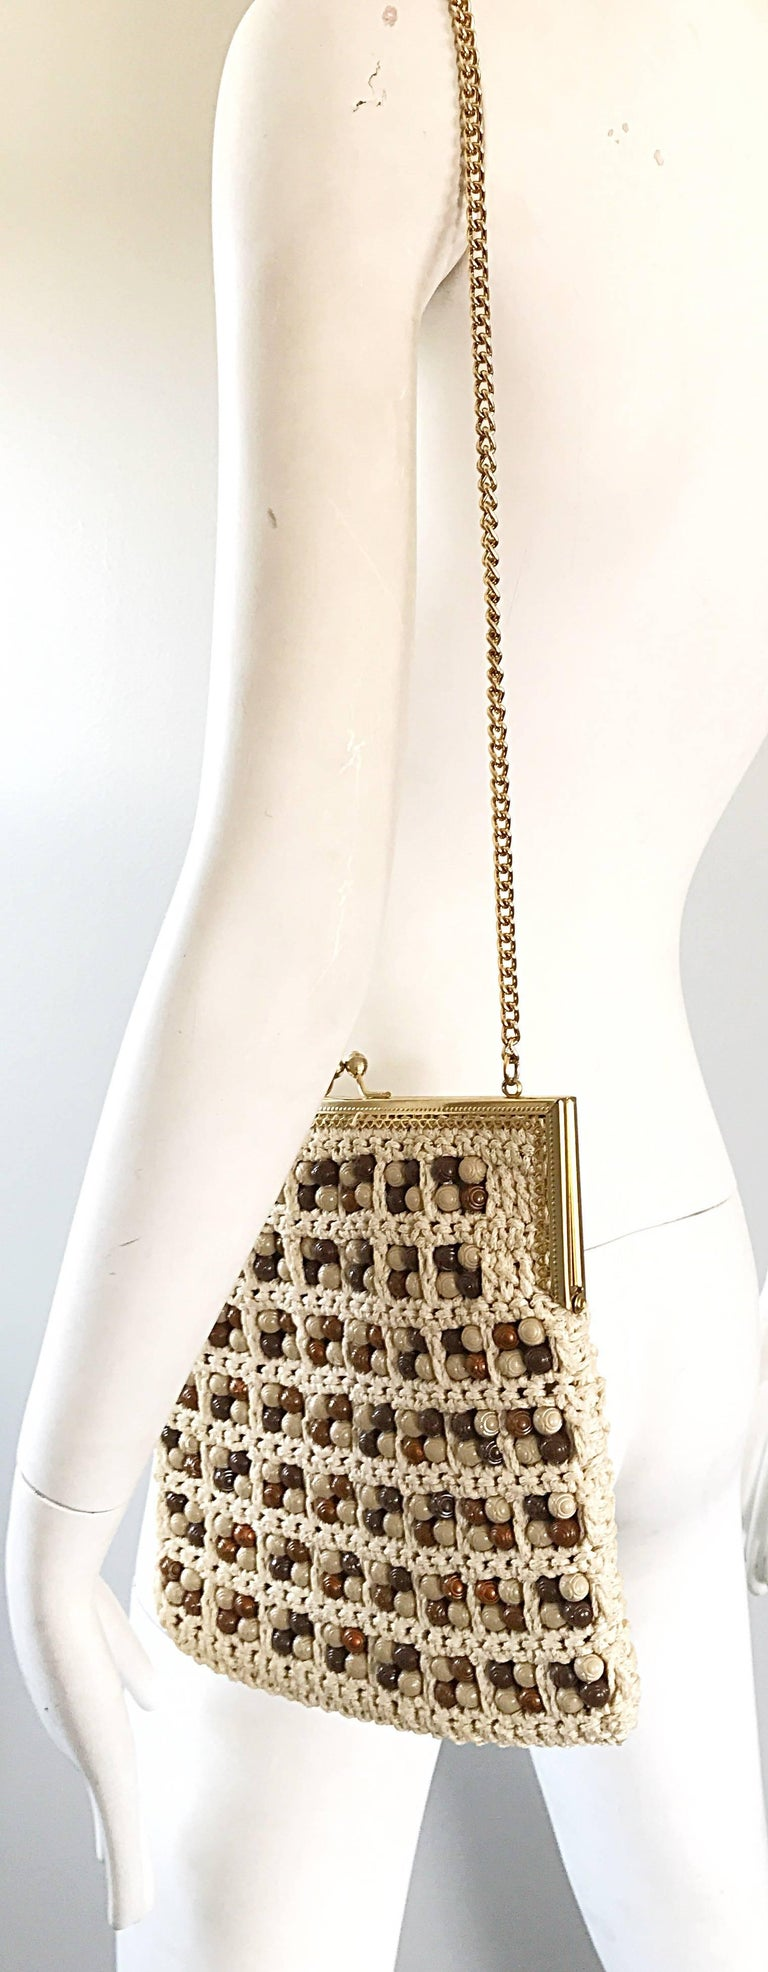 1970s Italian Ivory + Brown Hand Crochet Gold Chain Boho Vintage Shoulder Bag  In Excellent Condition For Sale In Chicago, IL